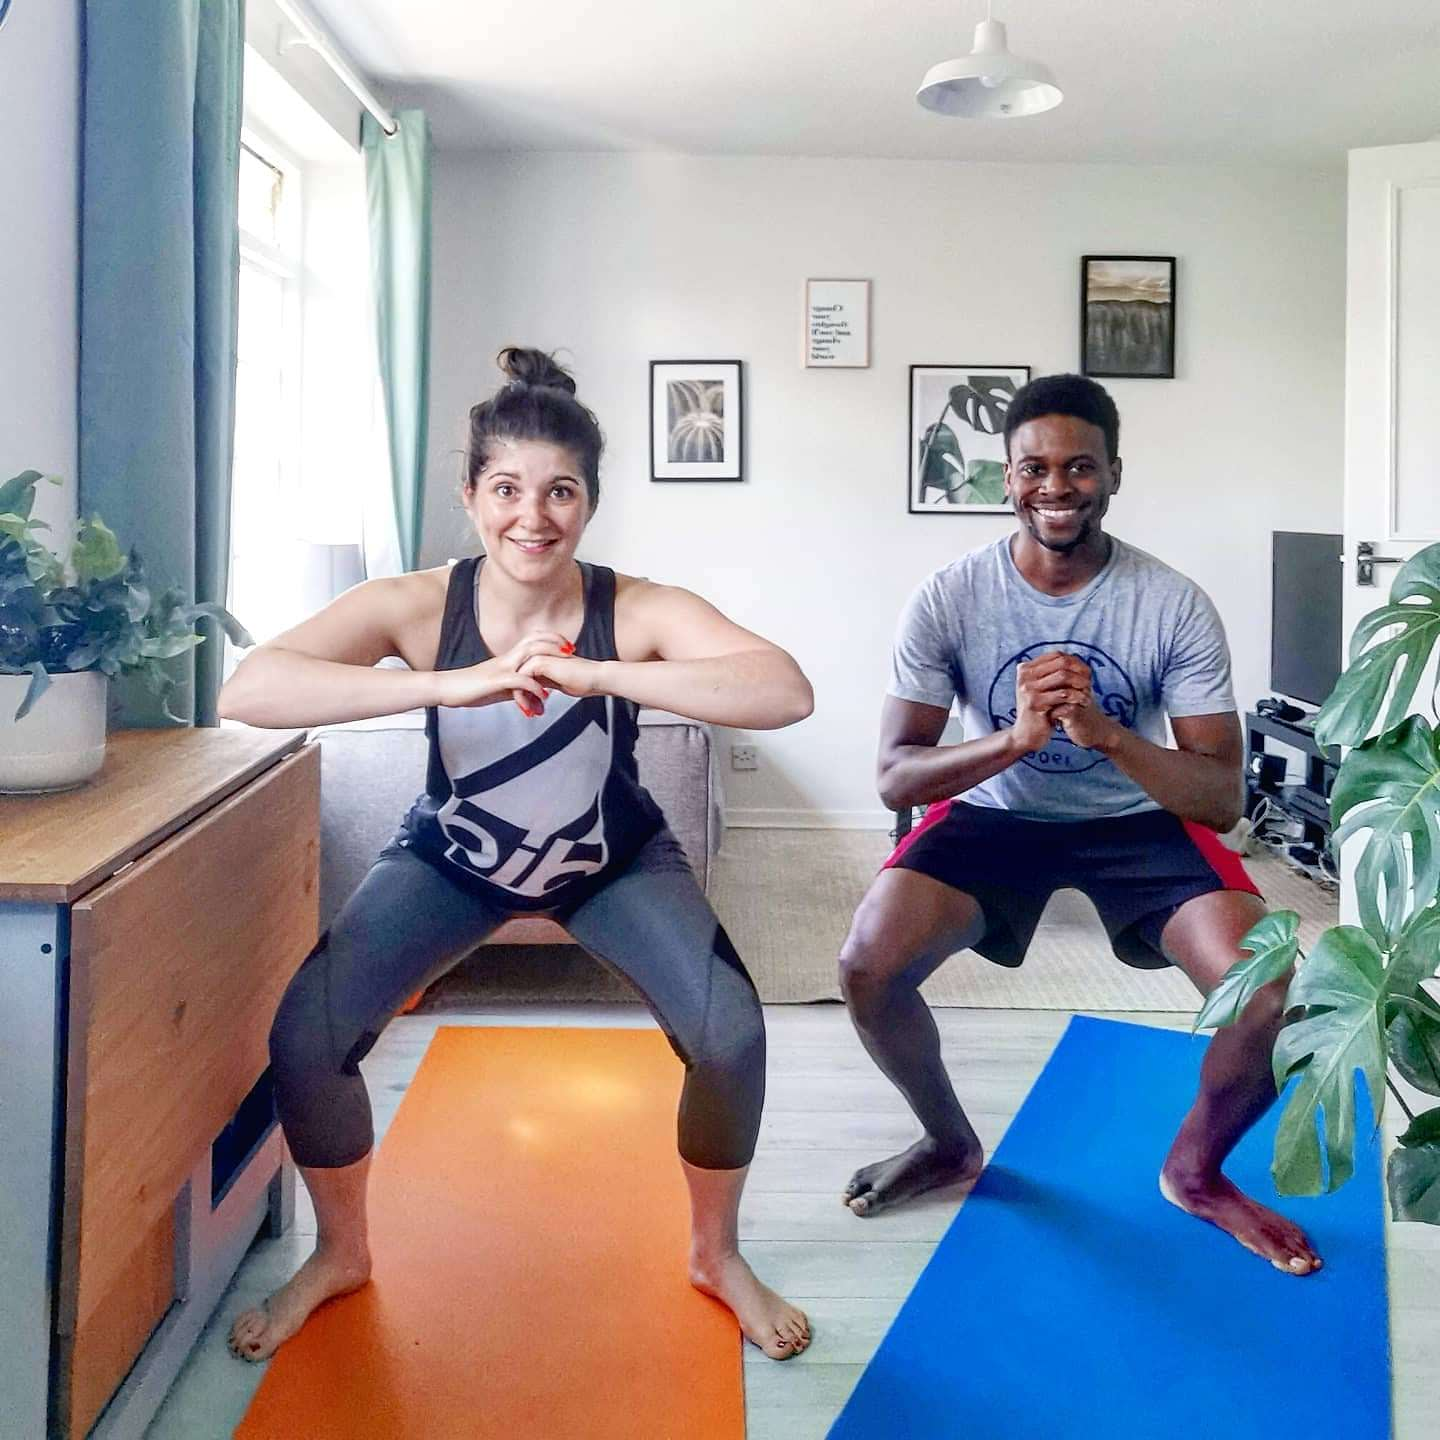 Two people squatting during home workouts